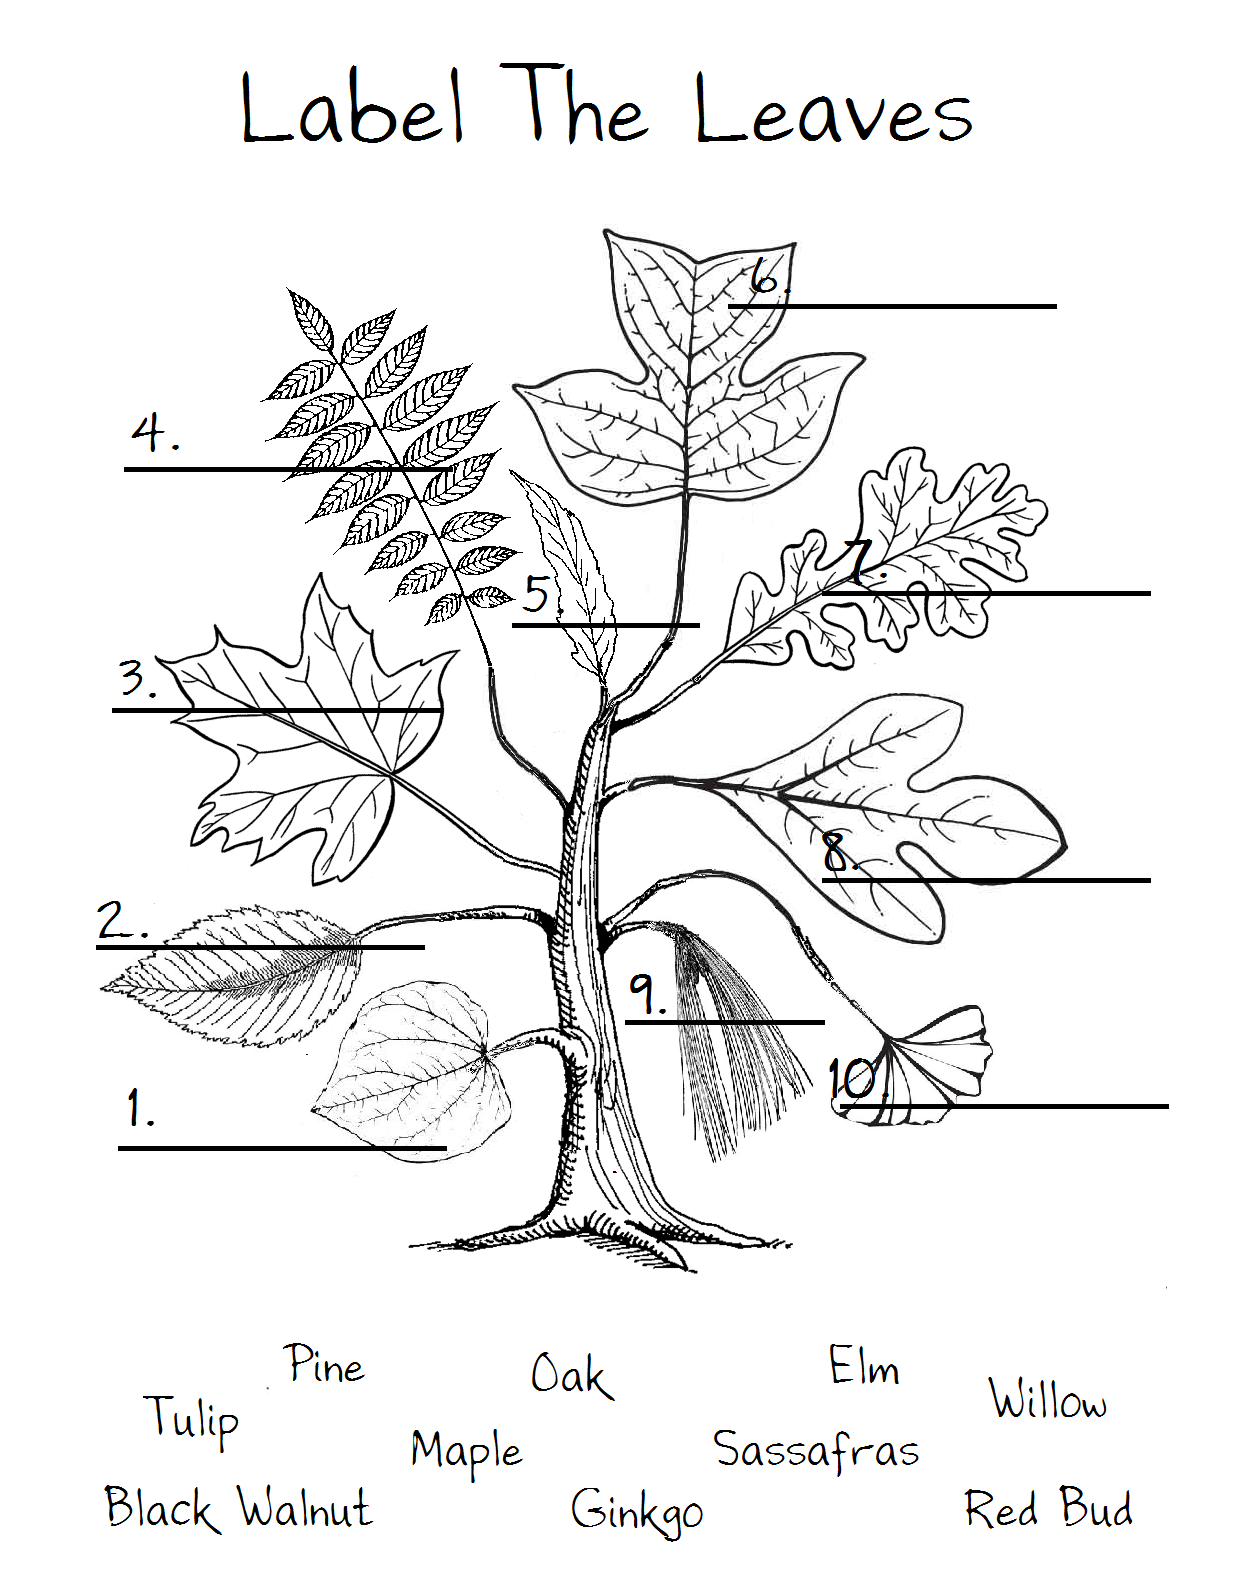 worksheet Plant Anatomy Worksheet 1 red bud 2 elm 3 maple 4 black walnut 5 willow 6 tulip 7 oak center ideas